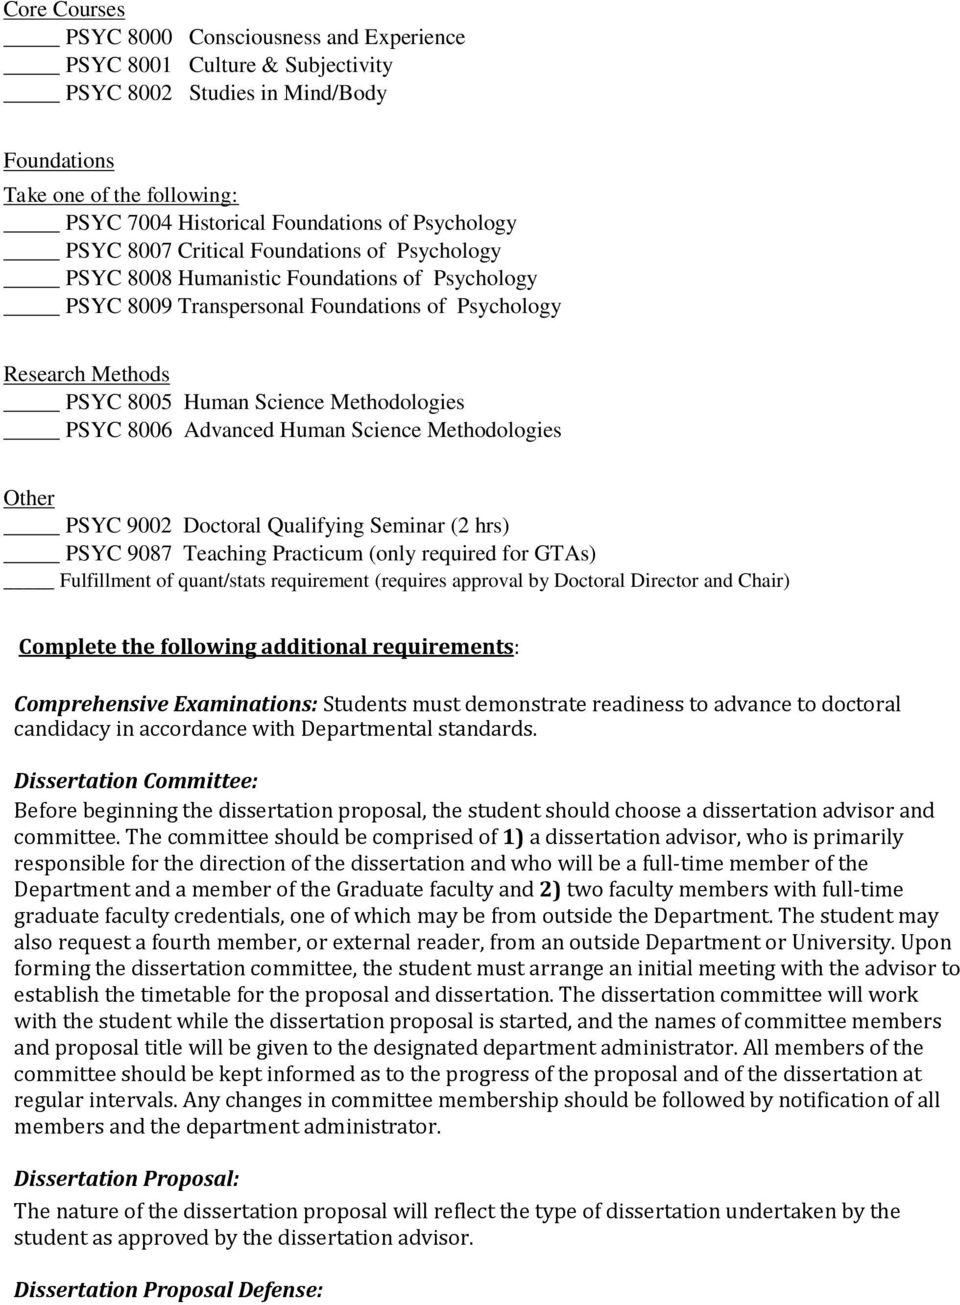 Methodologies PSYC 8006 Advanced Human Science Methodologies Other PSYC 9002 Doctoral Qualifying Seminar (2 hrs) PSYC 9087 Teaching Practicum (only required for GTAs) Fulfillment of quant/stats